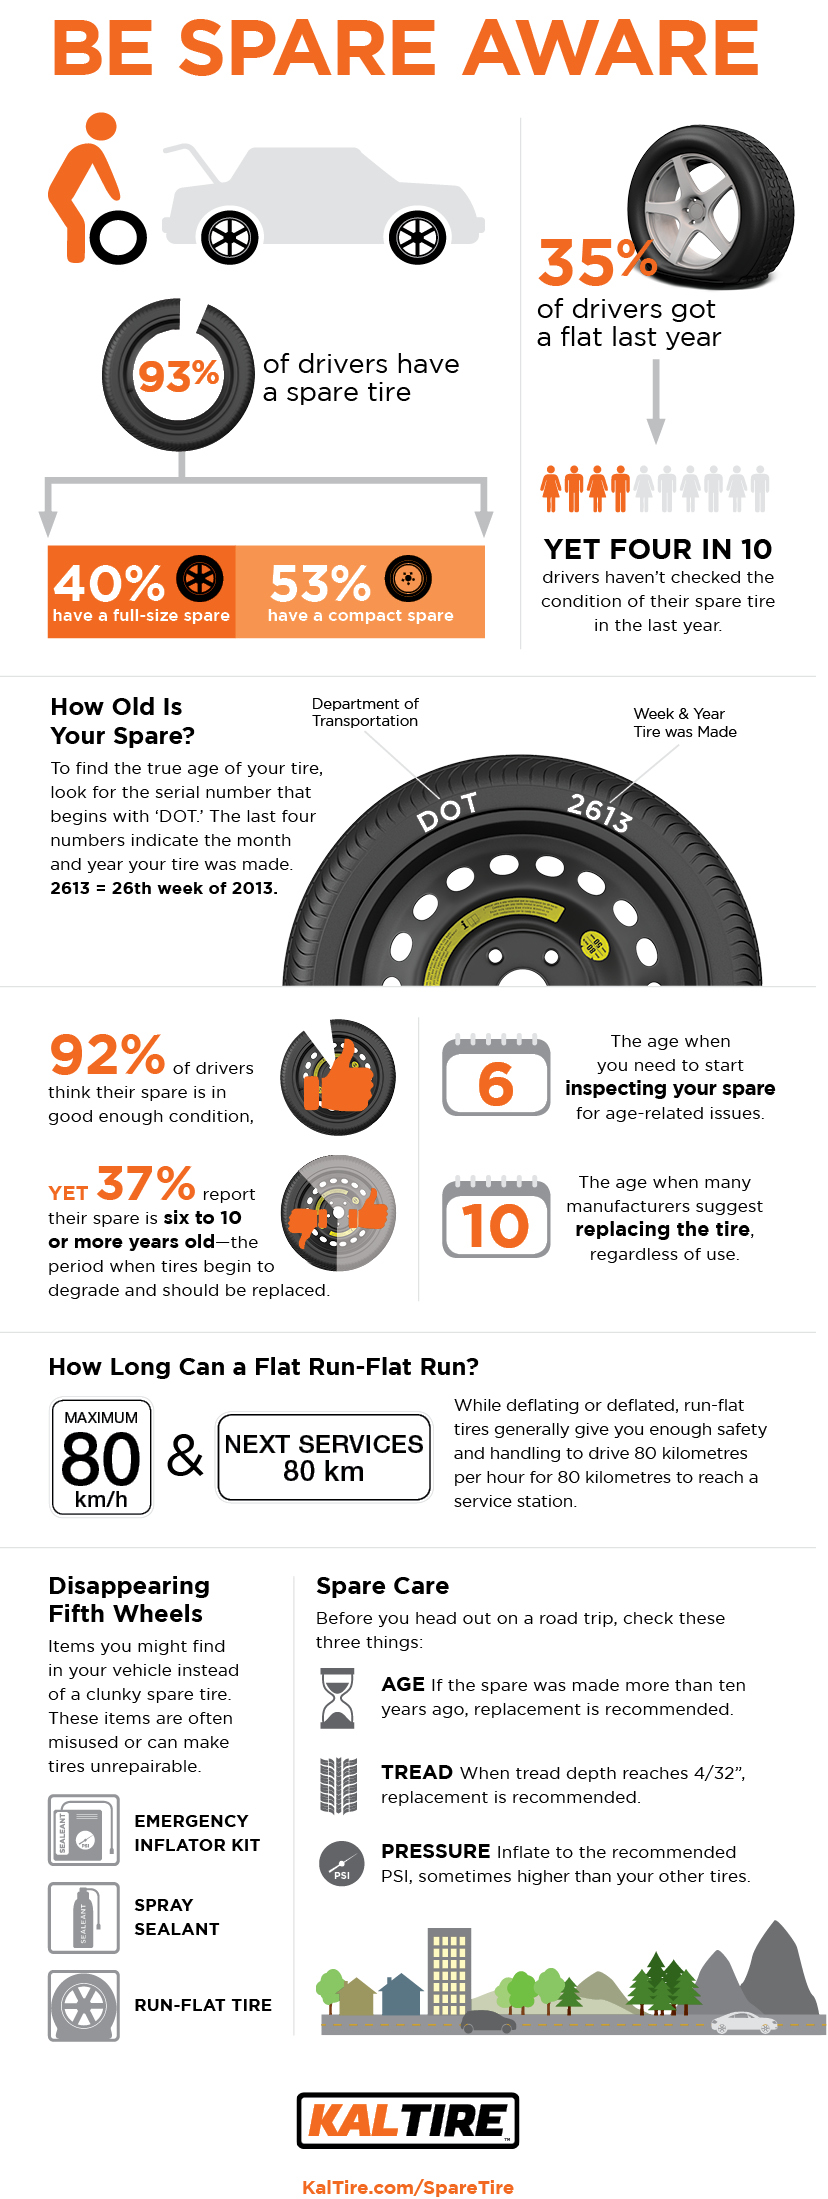 Kal Tire Infographic - Spare Tire Types and Options